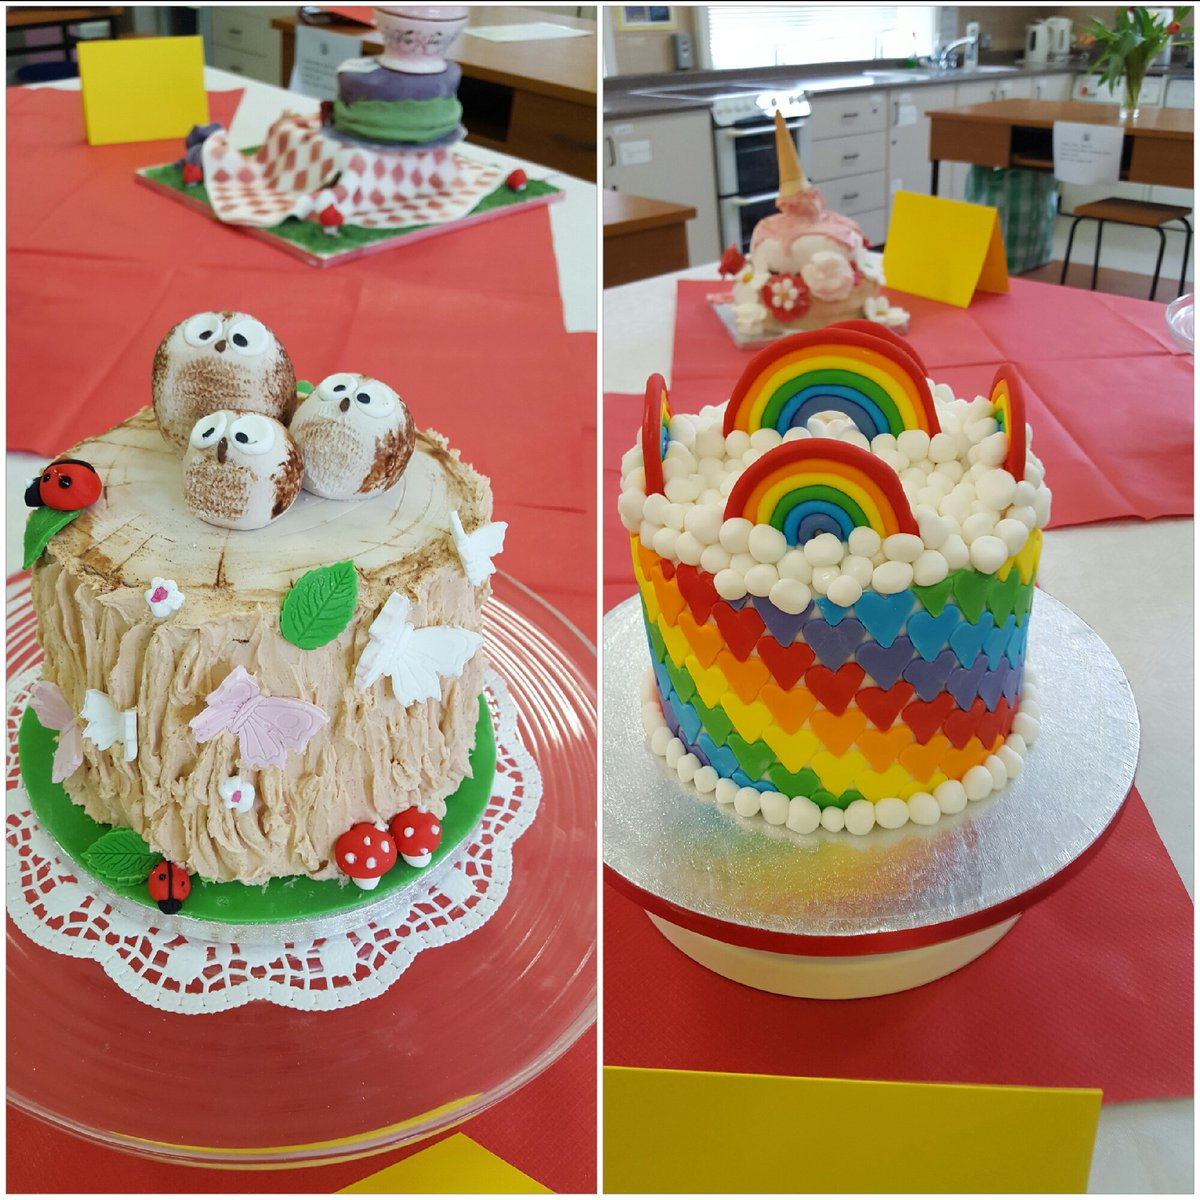 Fantastic cakes today at the Great Loreto Bake-off final 2017 in Loreto Letterkenny